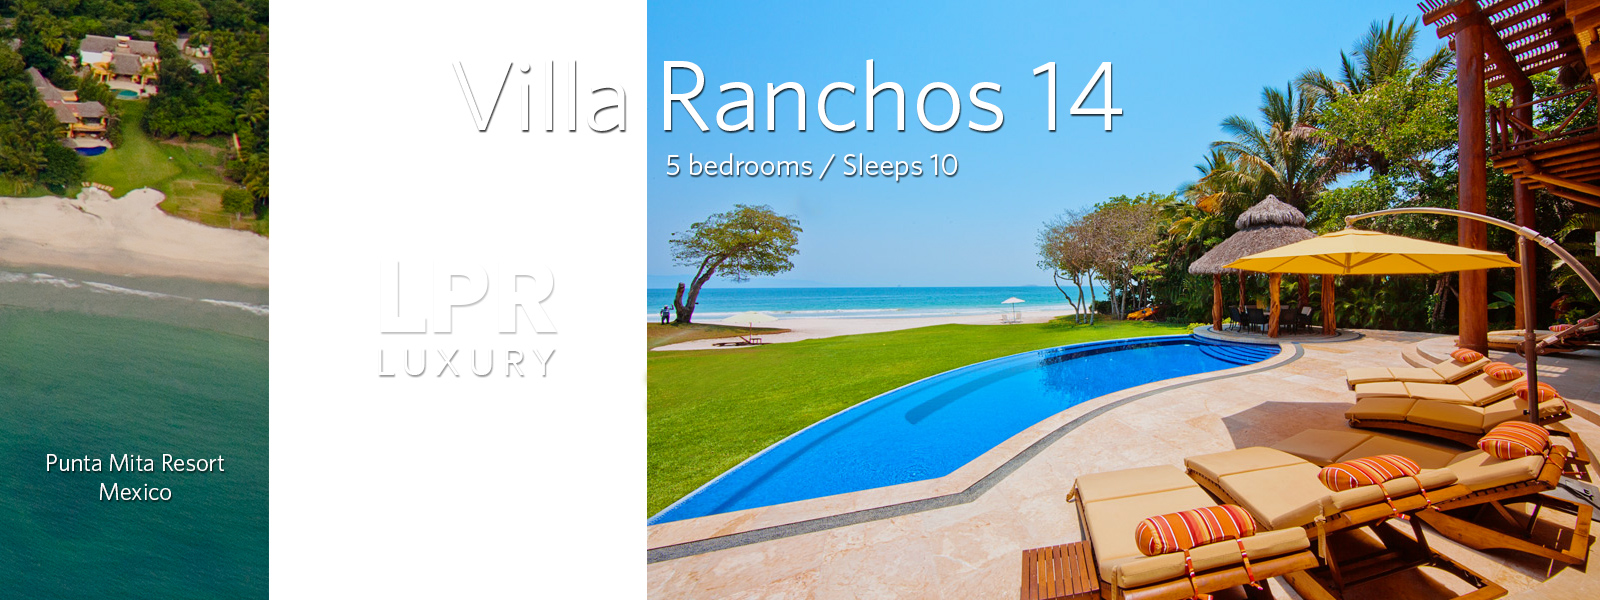 Villa Ranchos 14 - Punta Mita Mexico - Luxury Resort Real Estate and Vacation Rentals Villas